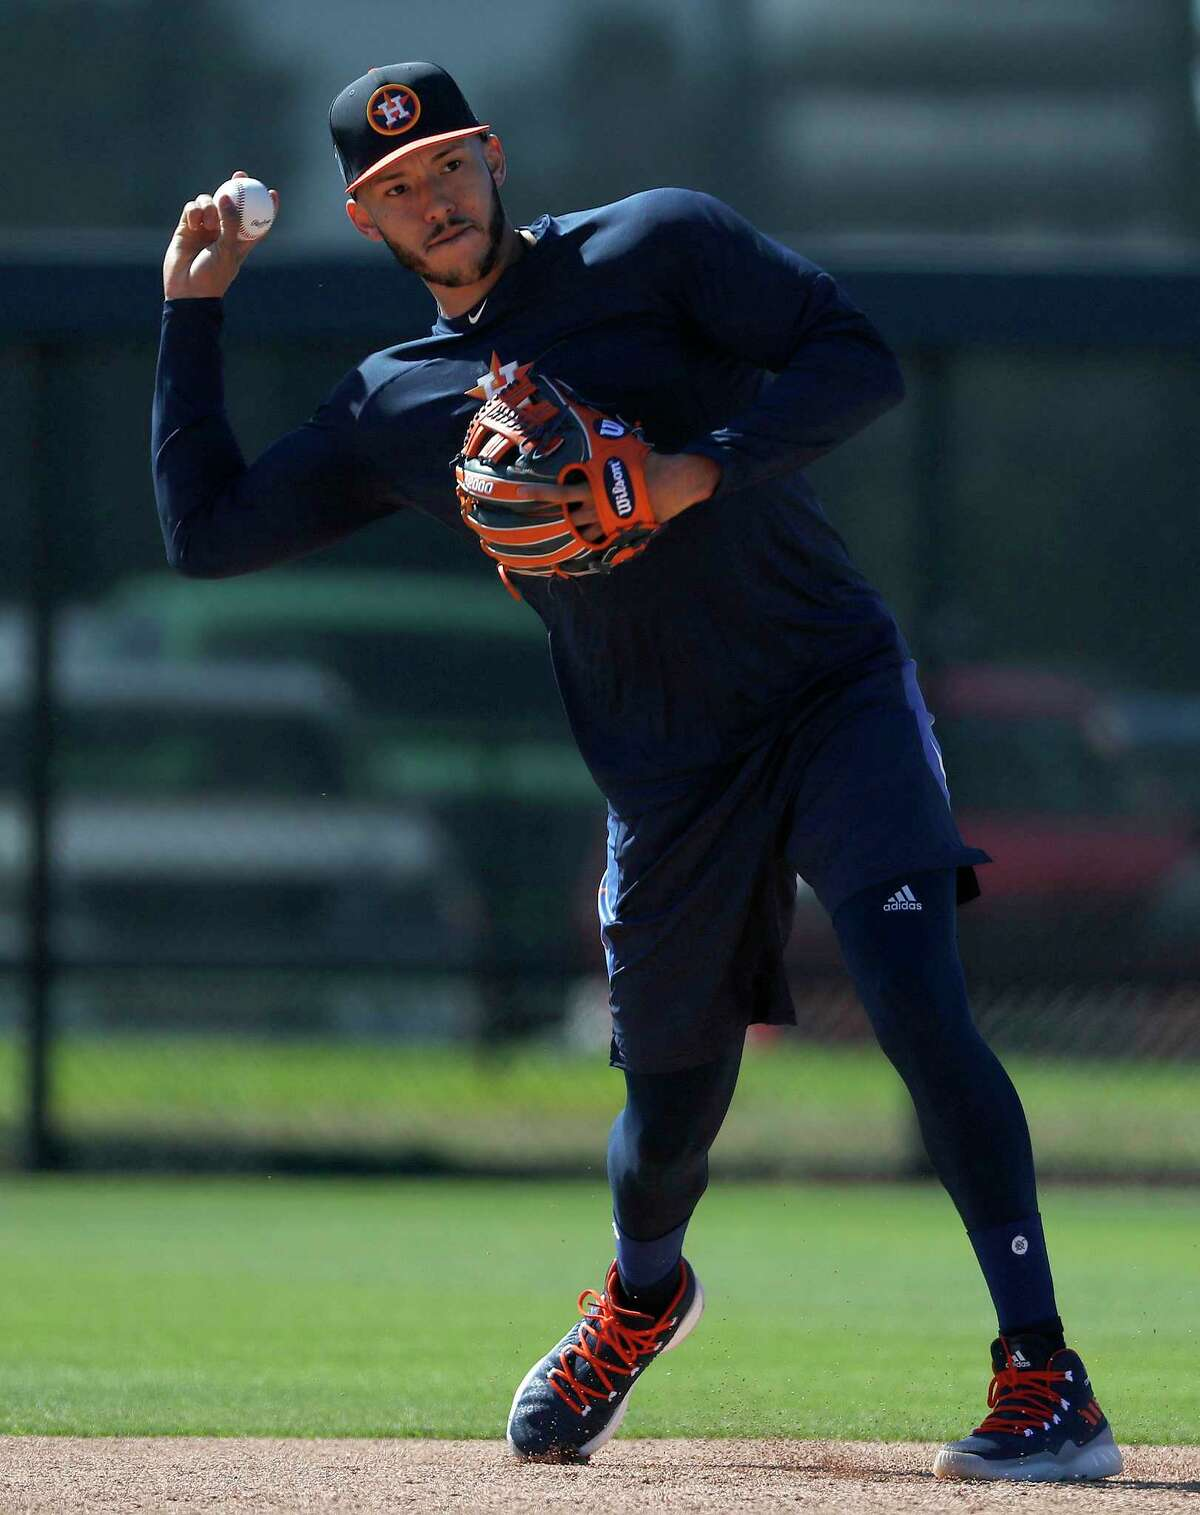 Houston Astros shortstop Carlos Correa throws the ball on a back field as he ran some drills with other early arriving position players during spring training at The Ballpark of the Palm Beaches, Friday, Feb. 16, 2018, in West Palm Beach .